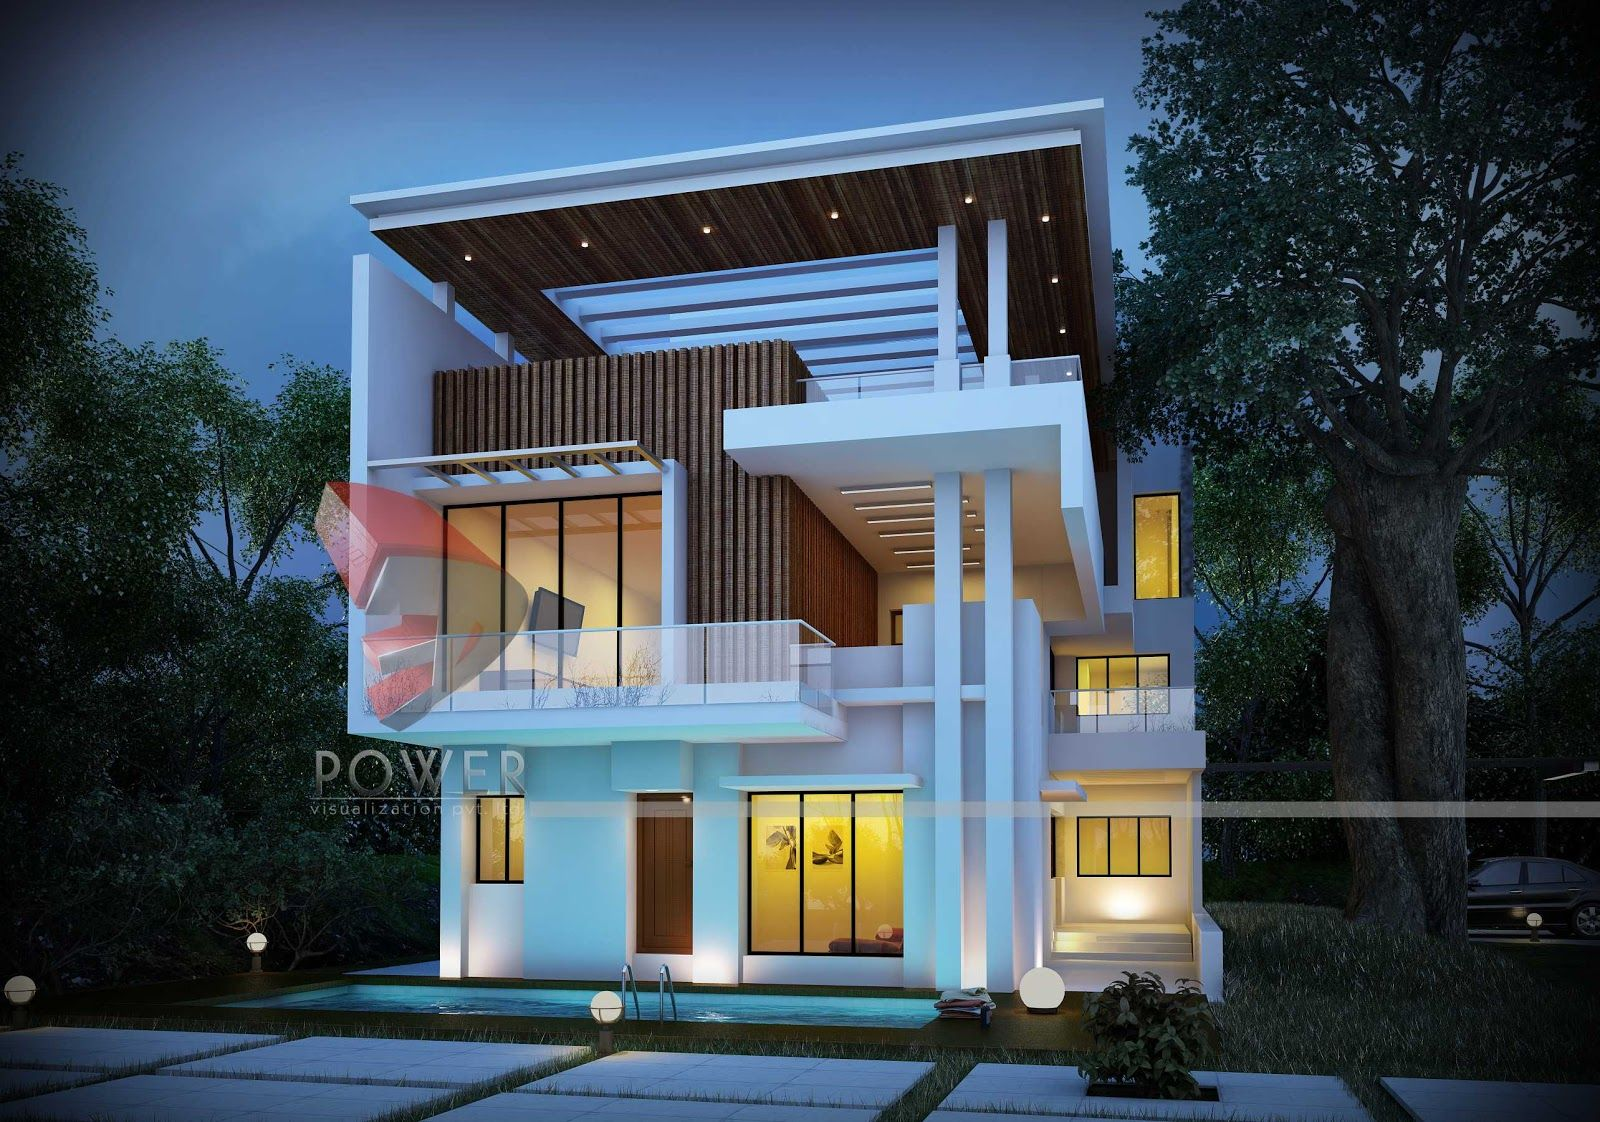 Home architecture design home design hairstyle for Looking for an architect to design a house